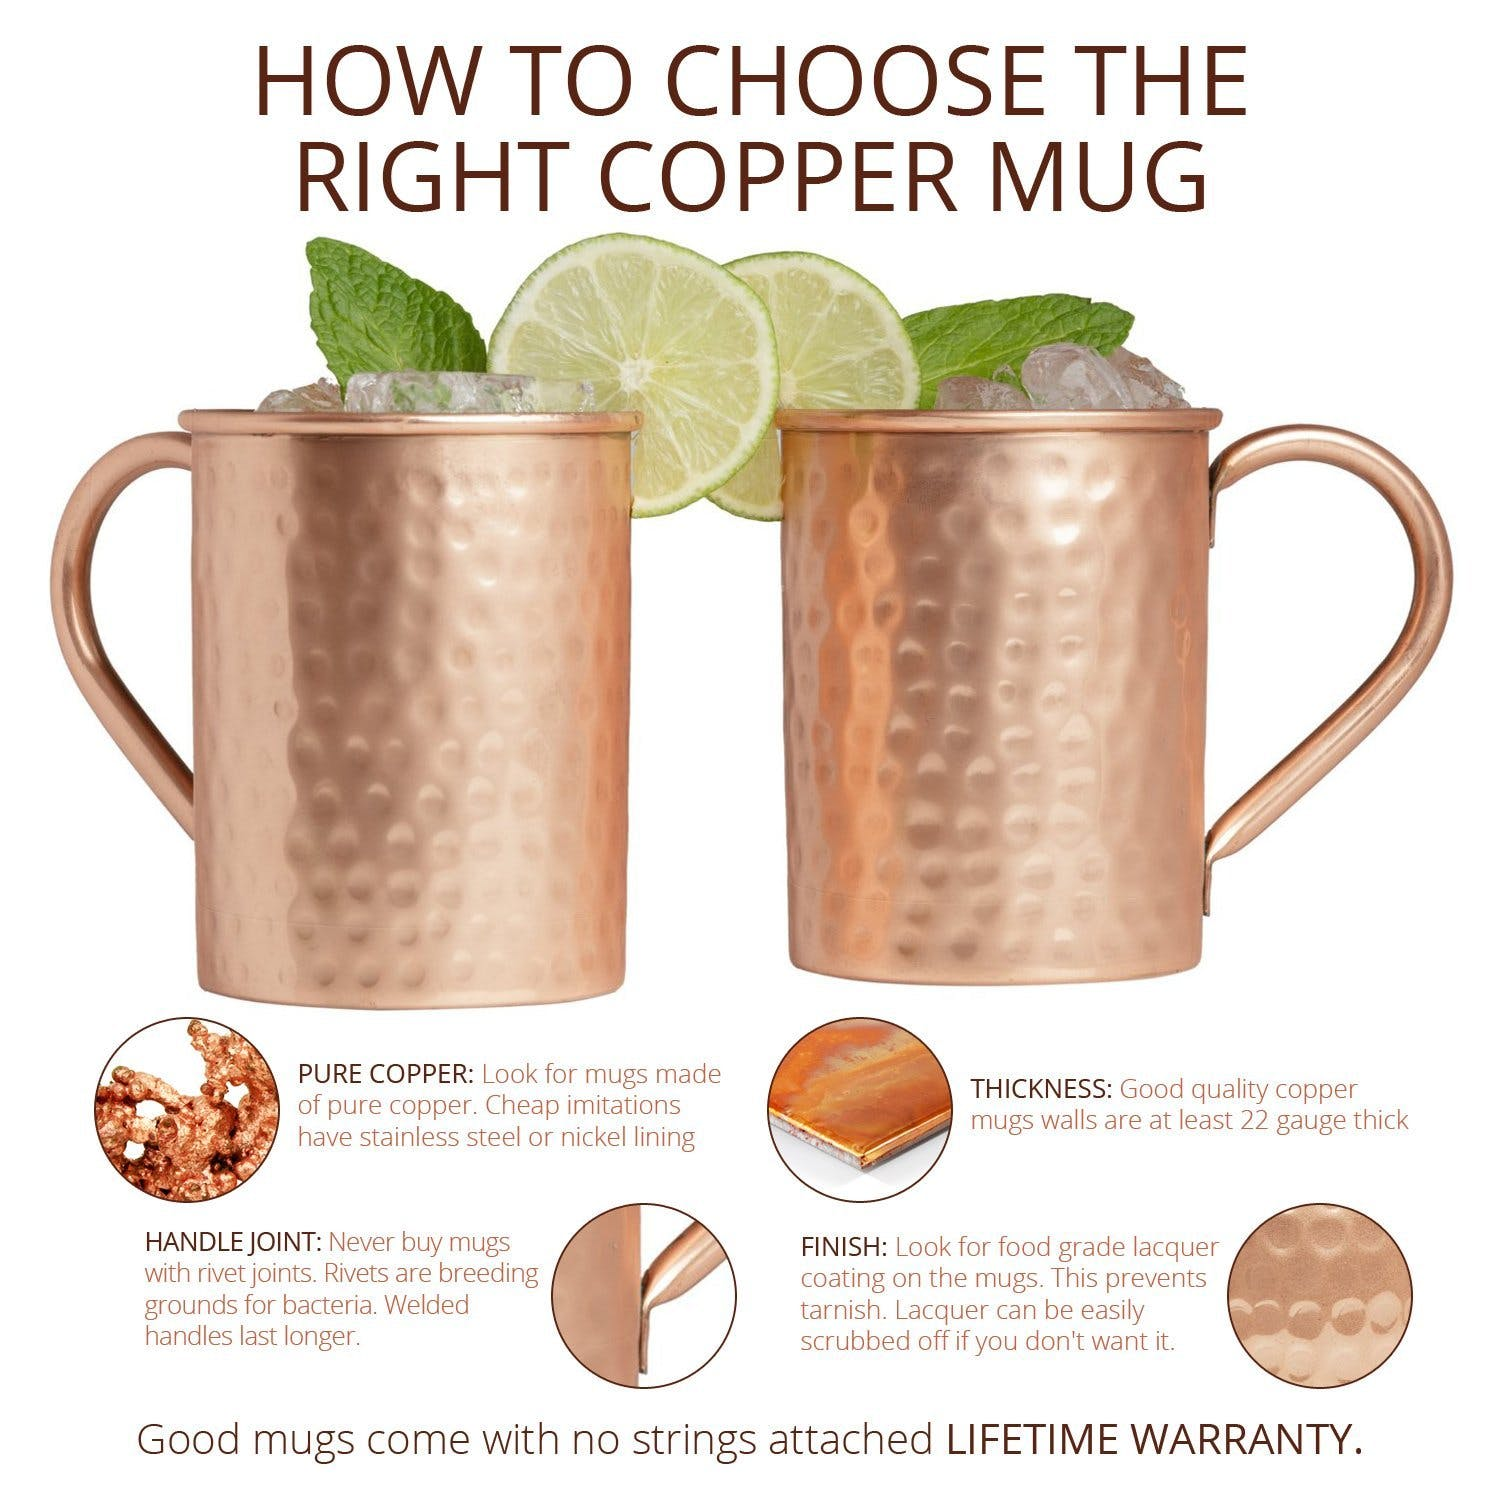 Moscow Mule Copper Mugs Set of 4 - 16 Ounce with 4 Artisan Hand Crafted Wooden Coasters (Classic) by Advanced Mixology - sold by Advanced Mixology